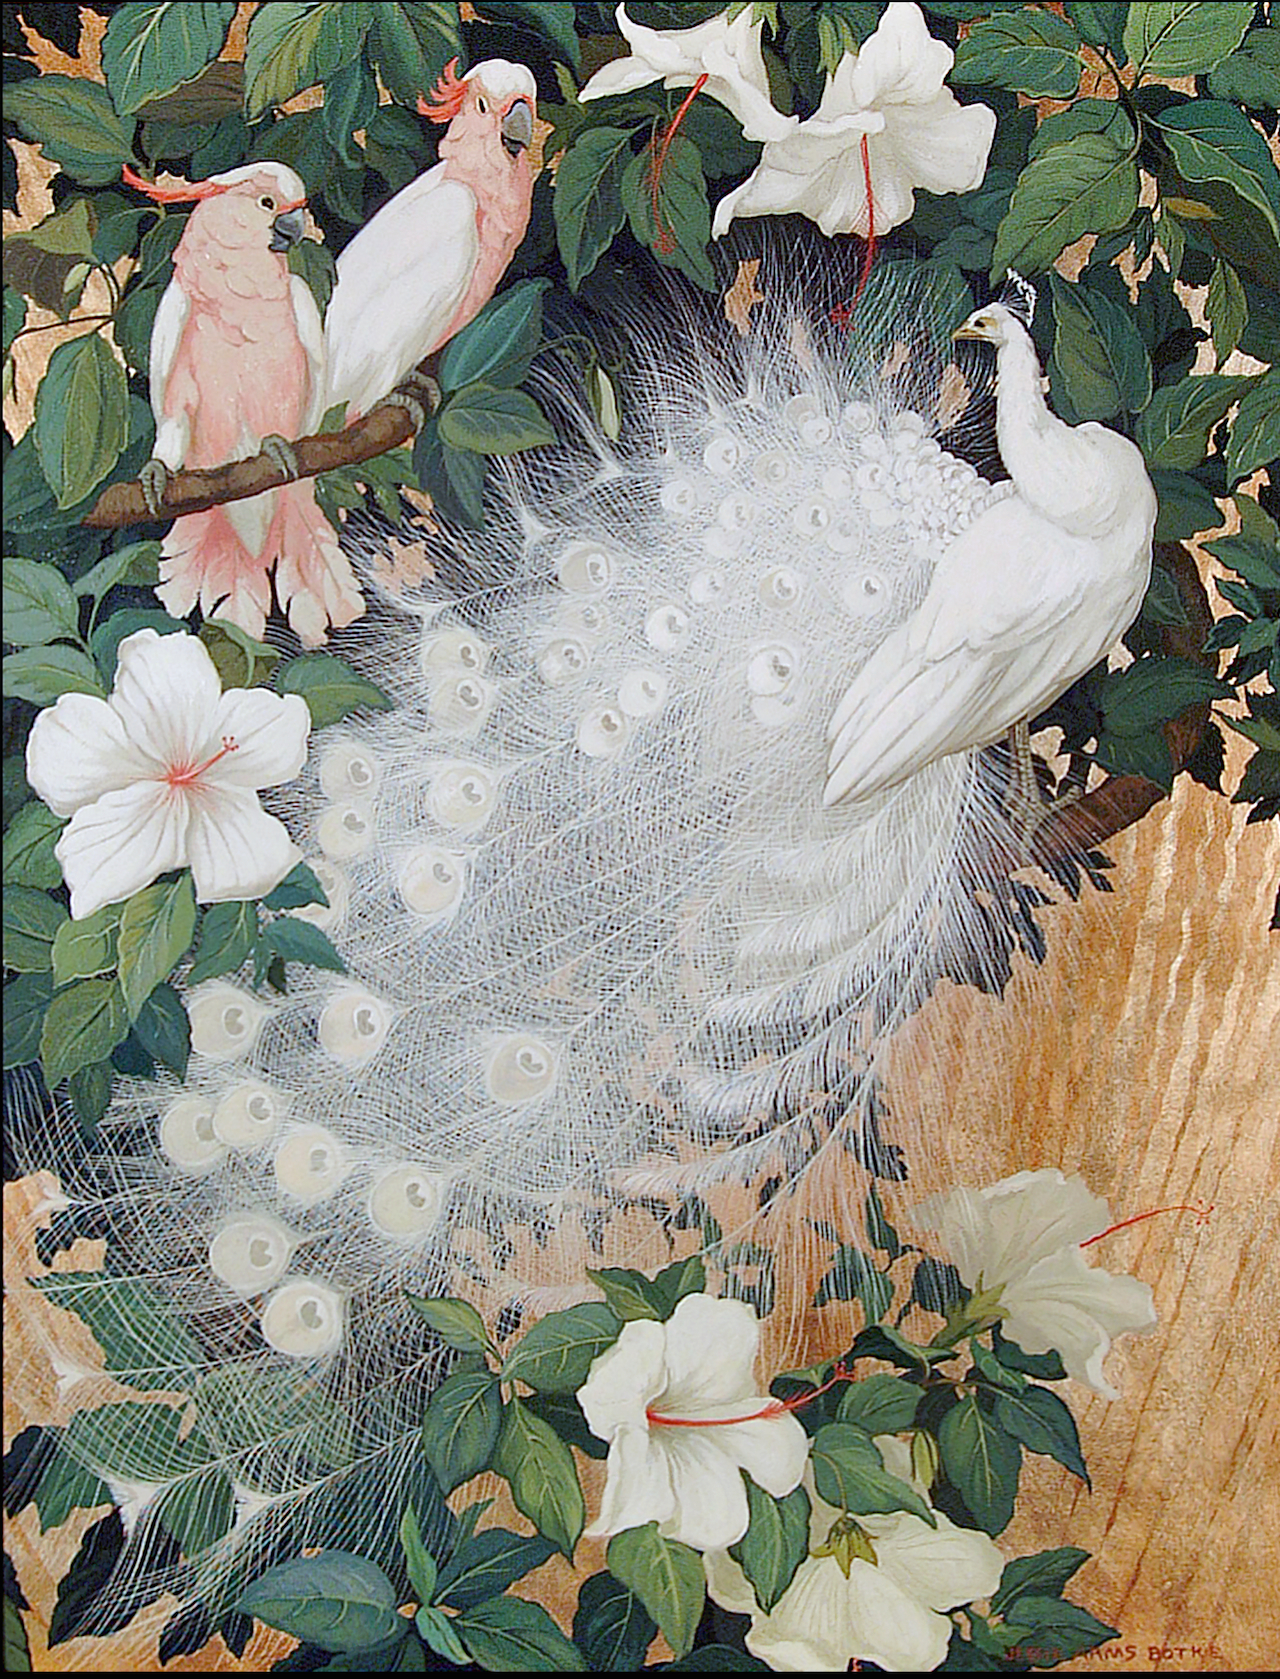 """""""Albino Peacock and Two Cockatoo,"""" (c. 1930) by Jesse Arms Botke (Collection of Deborah E. Maloy)"""